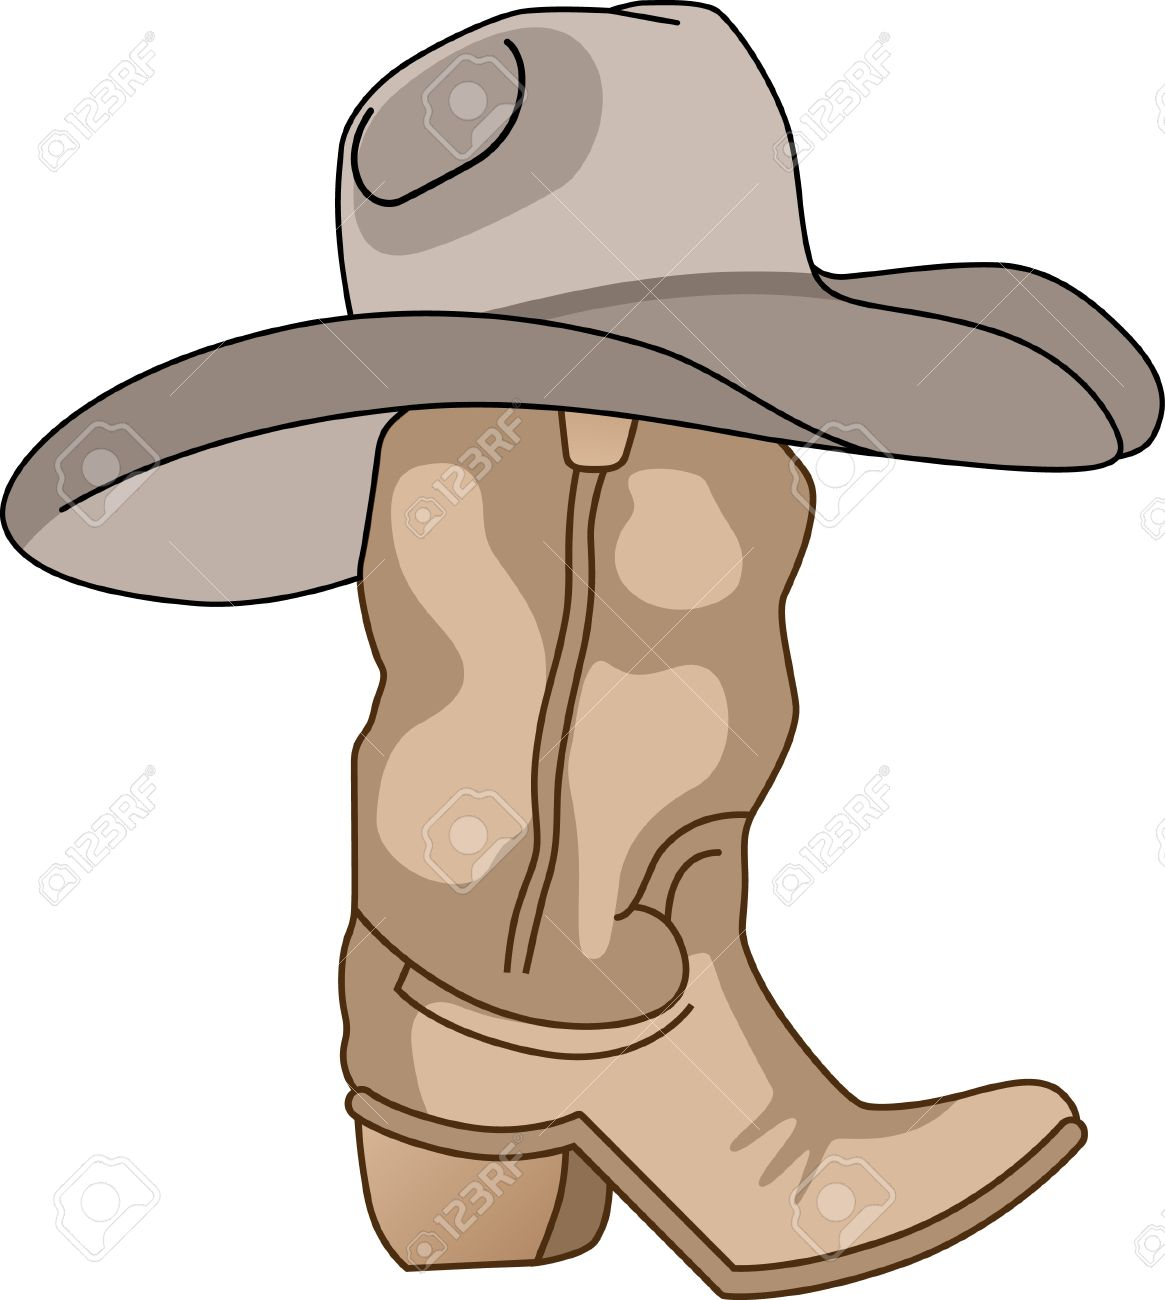 7162b785f8c1d7 Grab your boots and cowboy hat and head to the rodeo. Dont forget to give